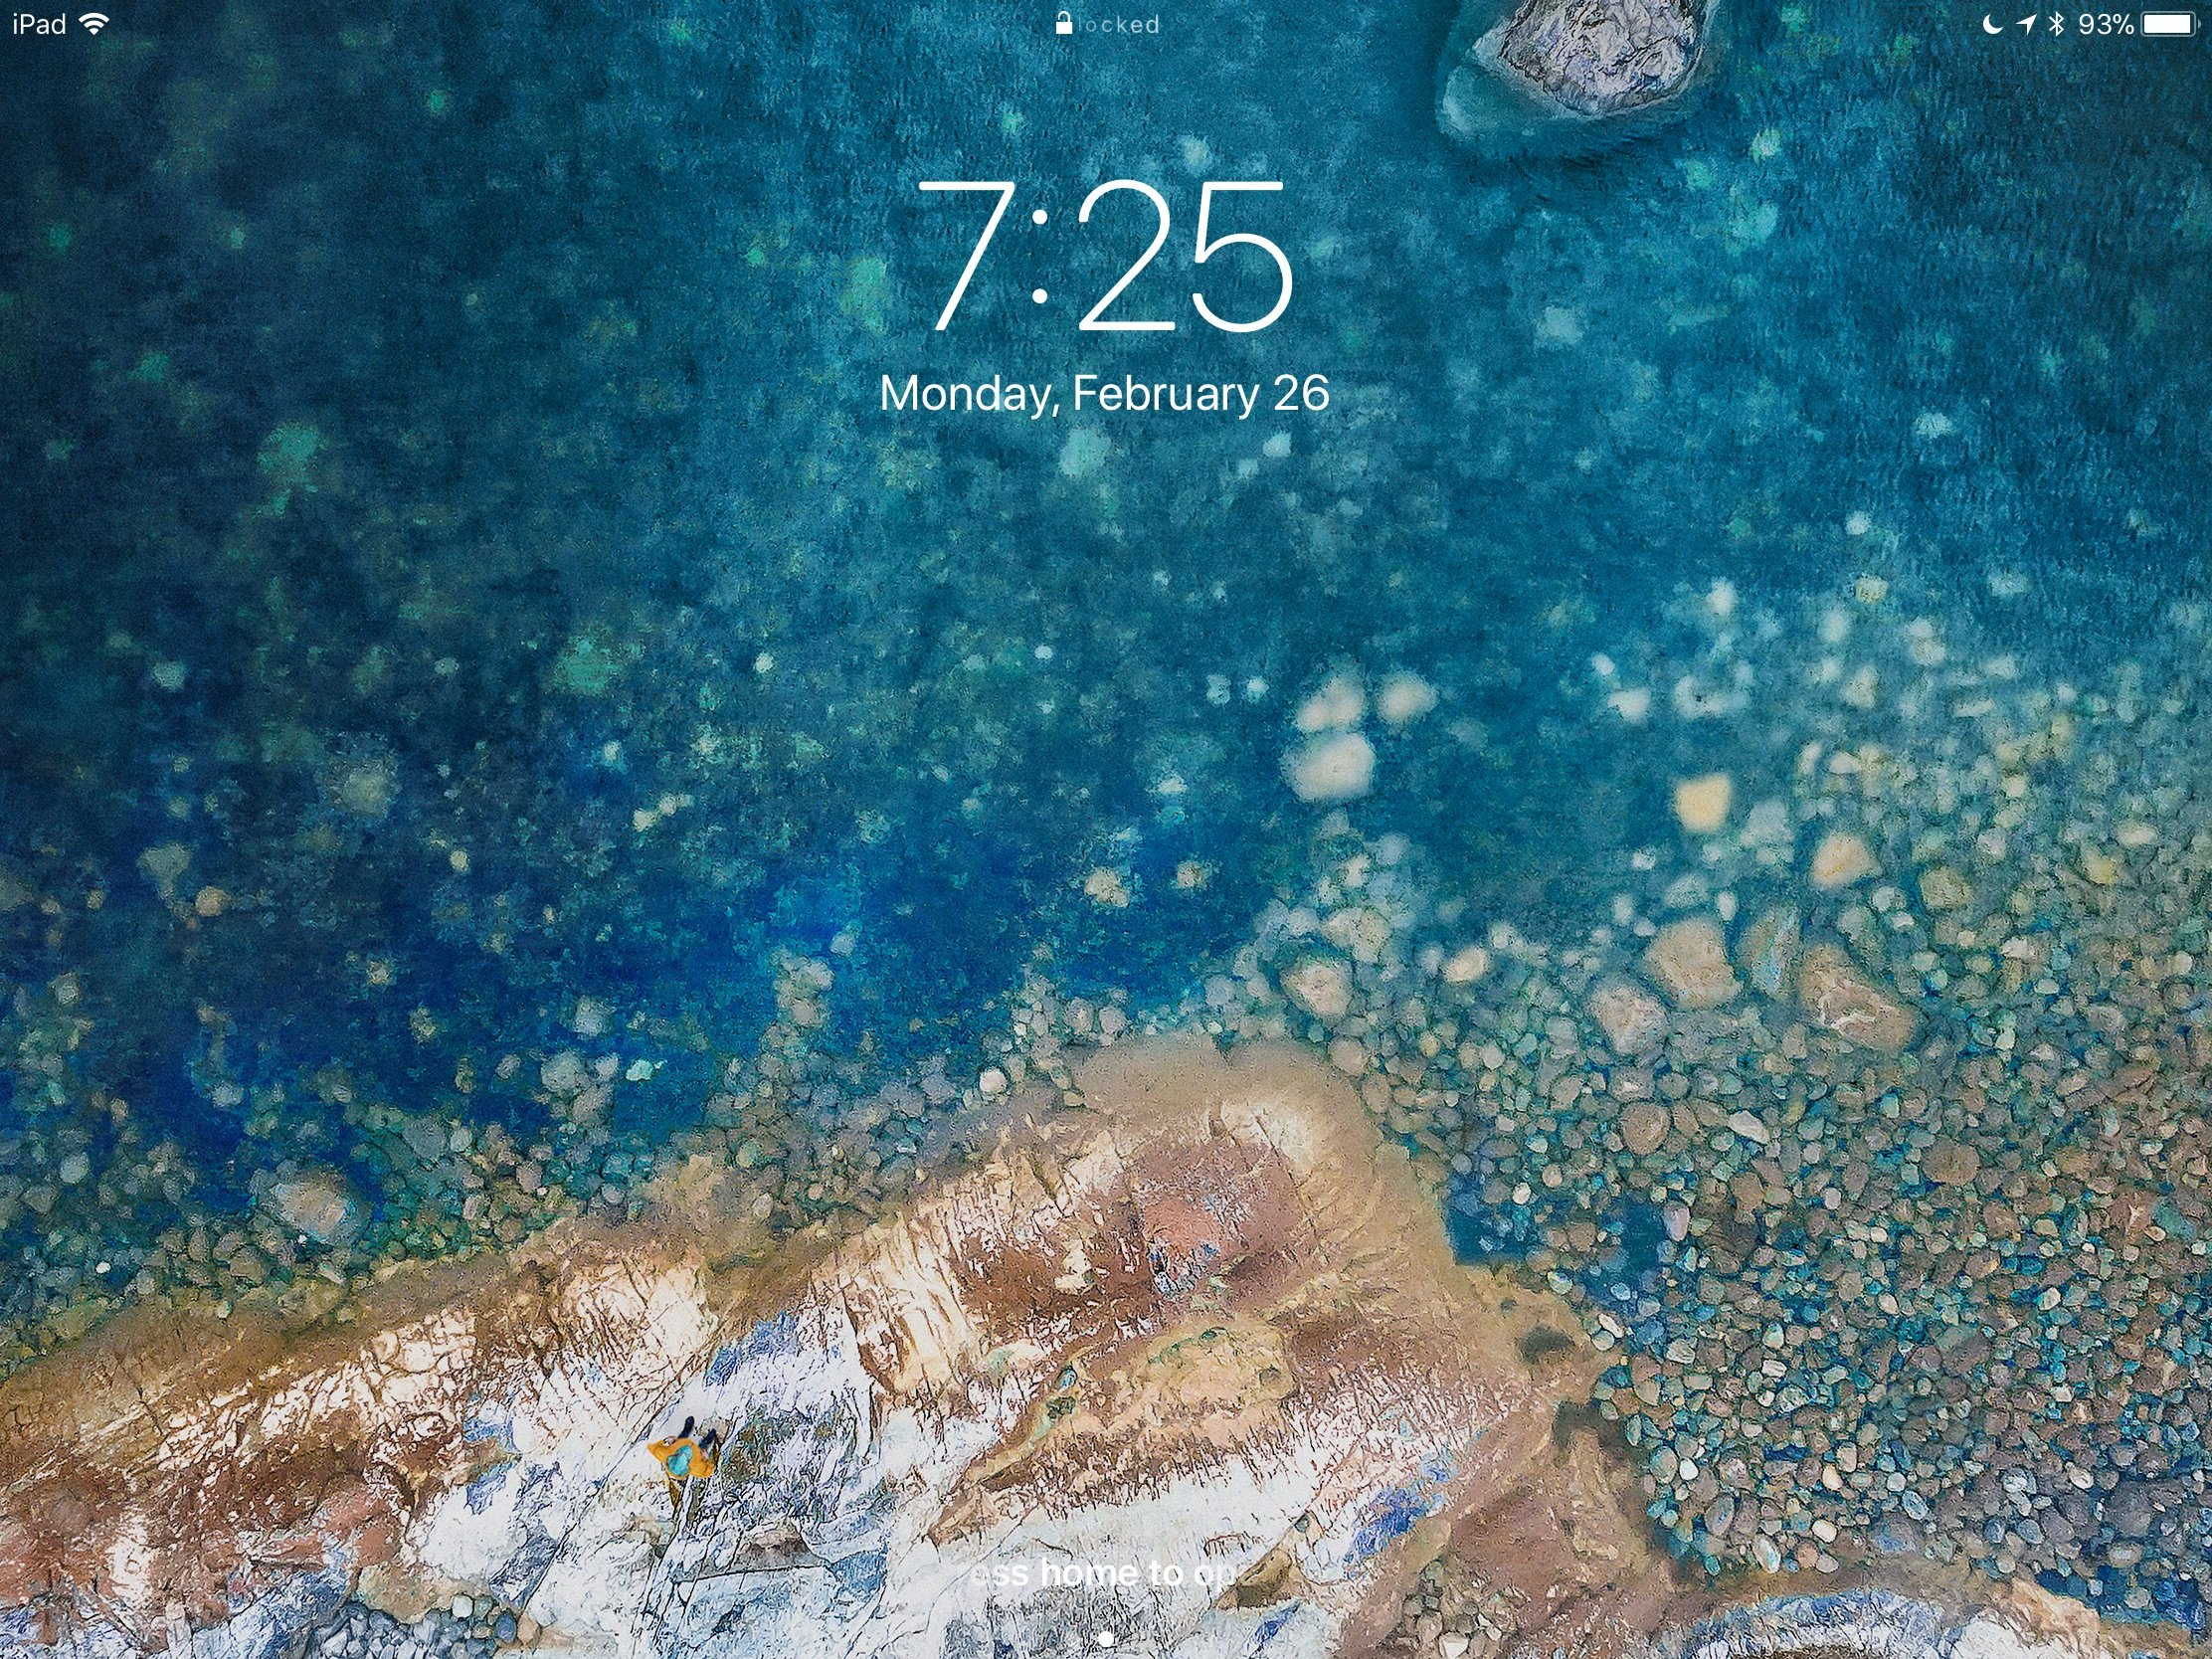 How To Change Your iPad Wallpaper 2224x1668